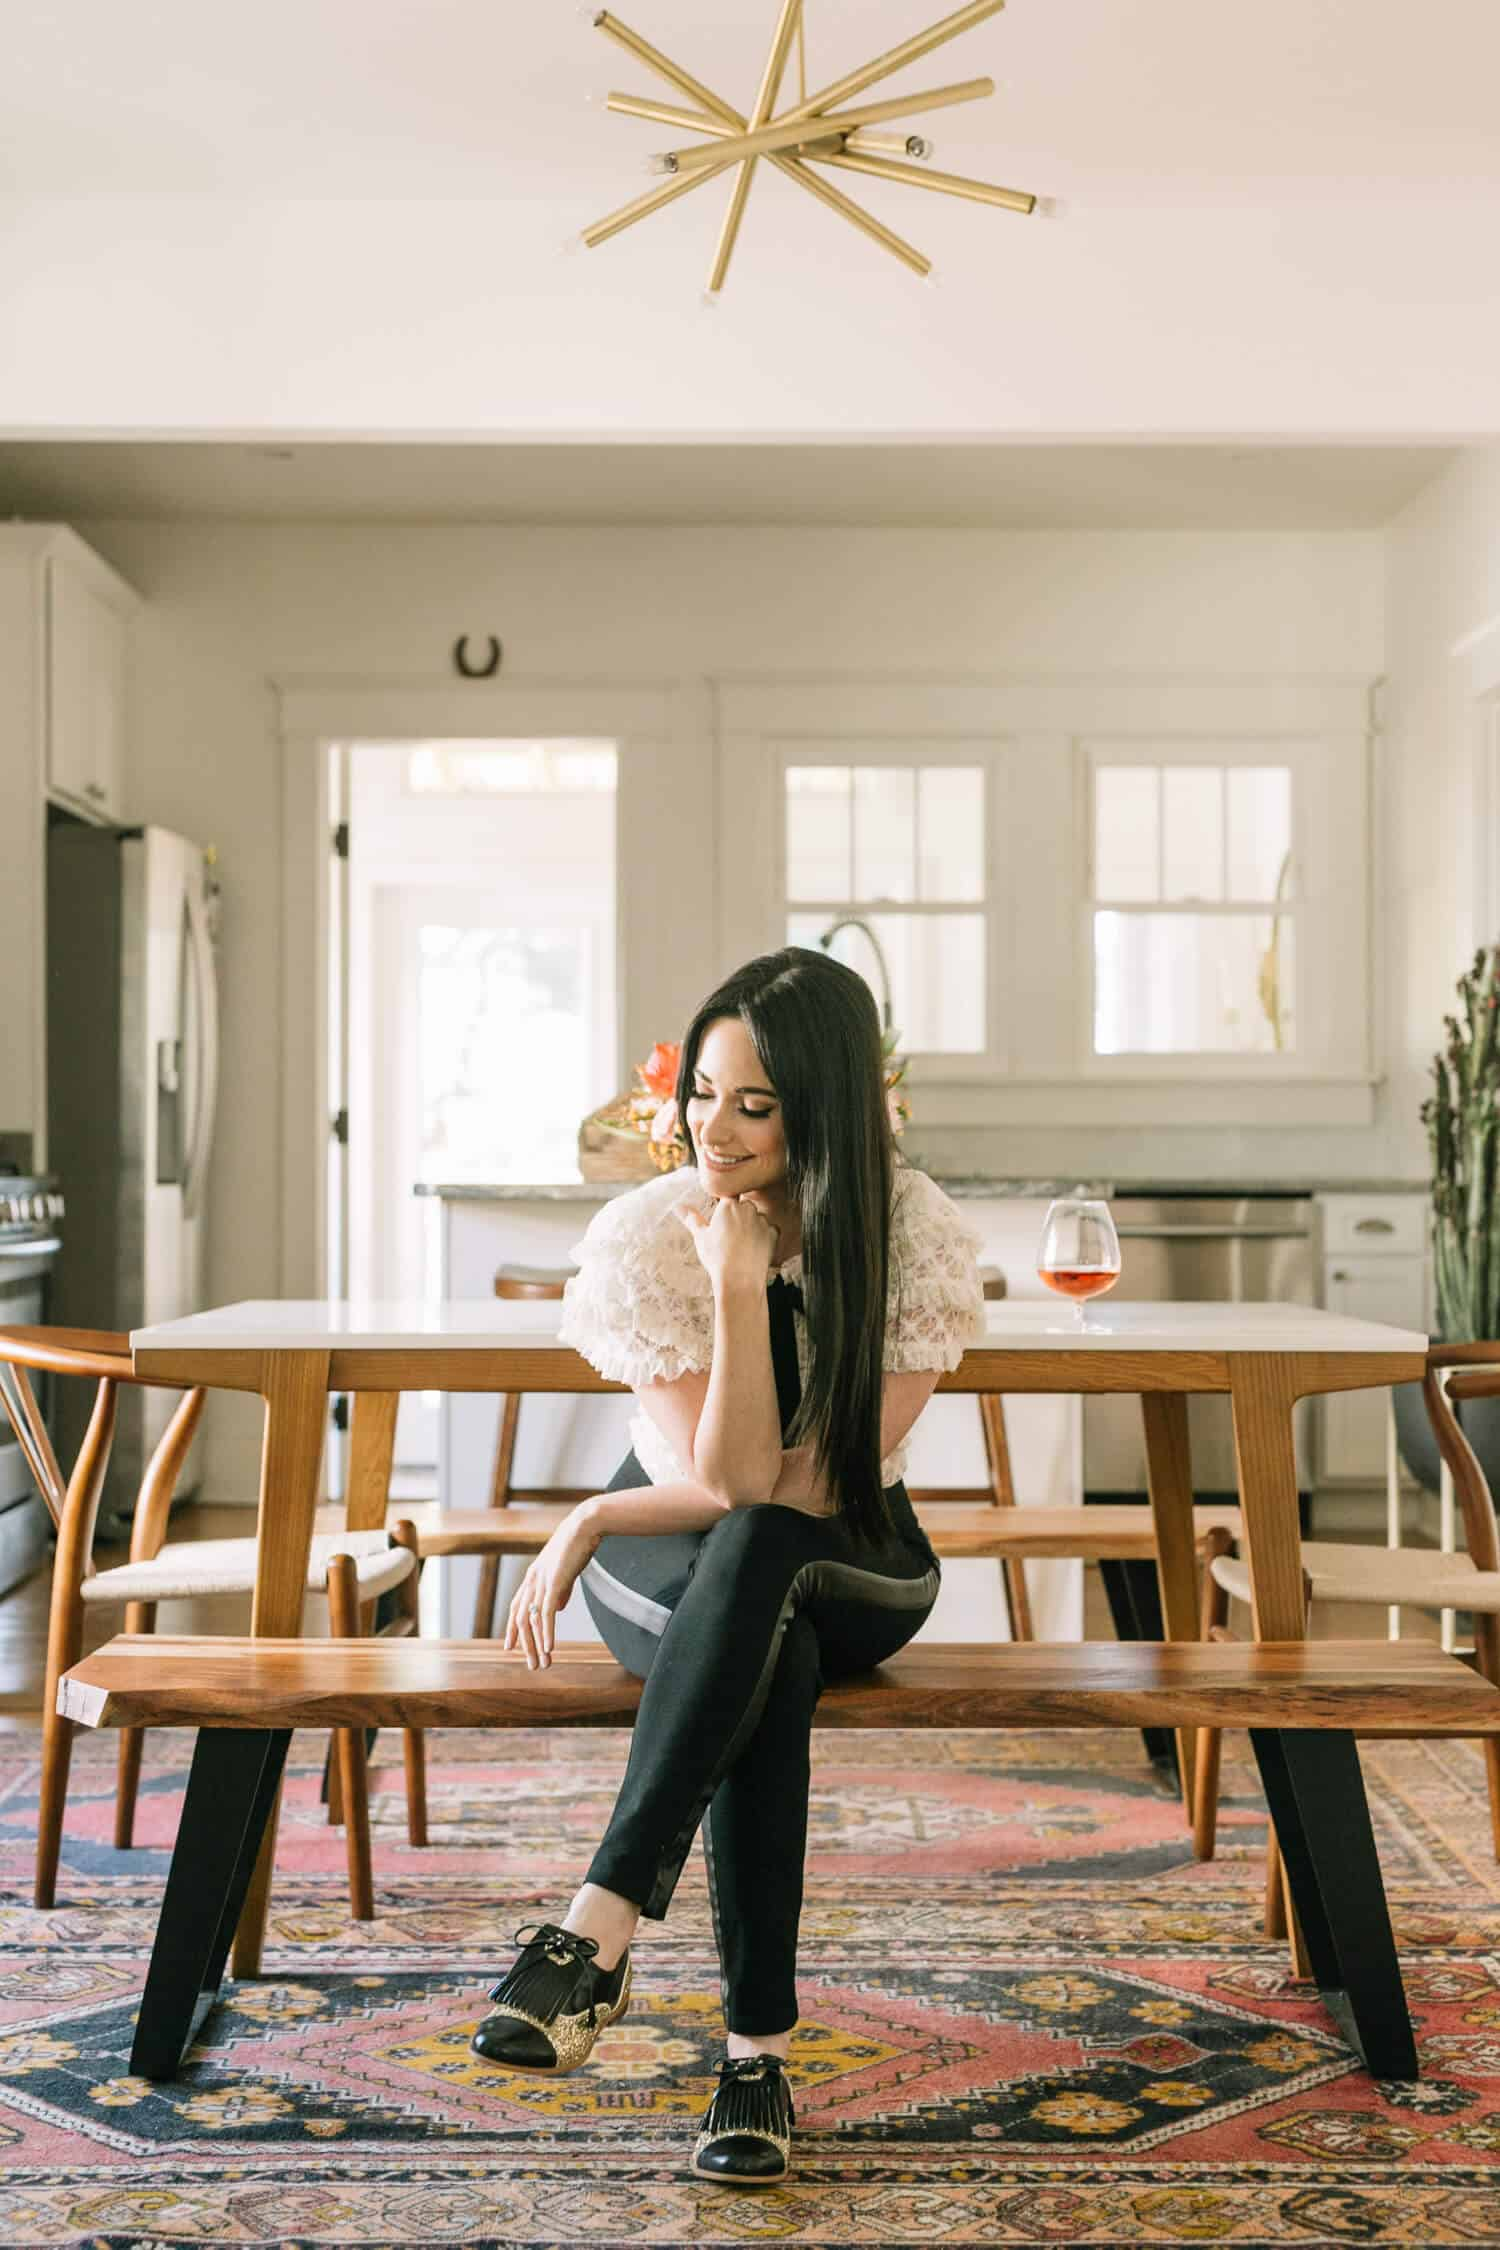 Earlier This Year, We Did A Living Room Tour With Kacey Musgraves And We  Had So Much Fun That We Decided To Do One More Room: Her Dining Room.